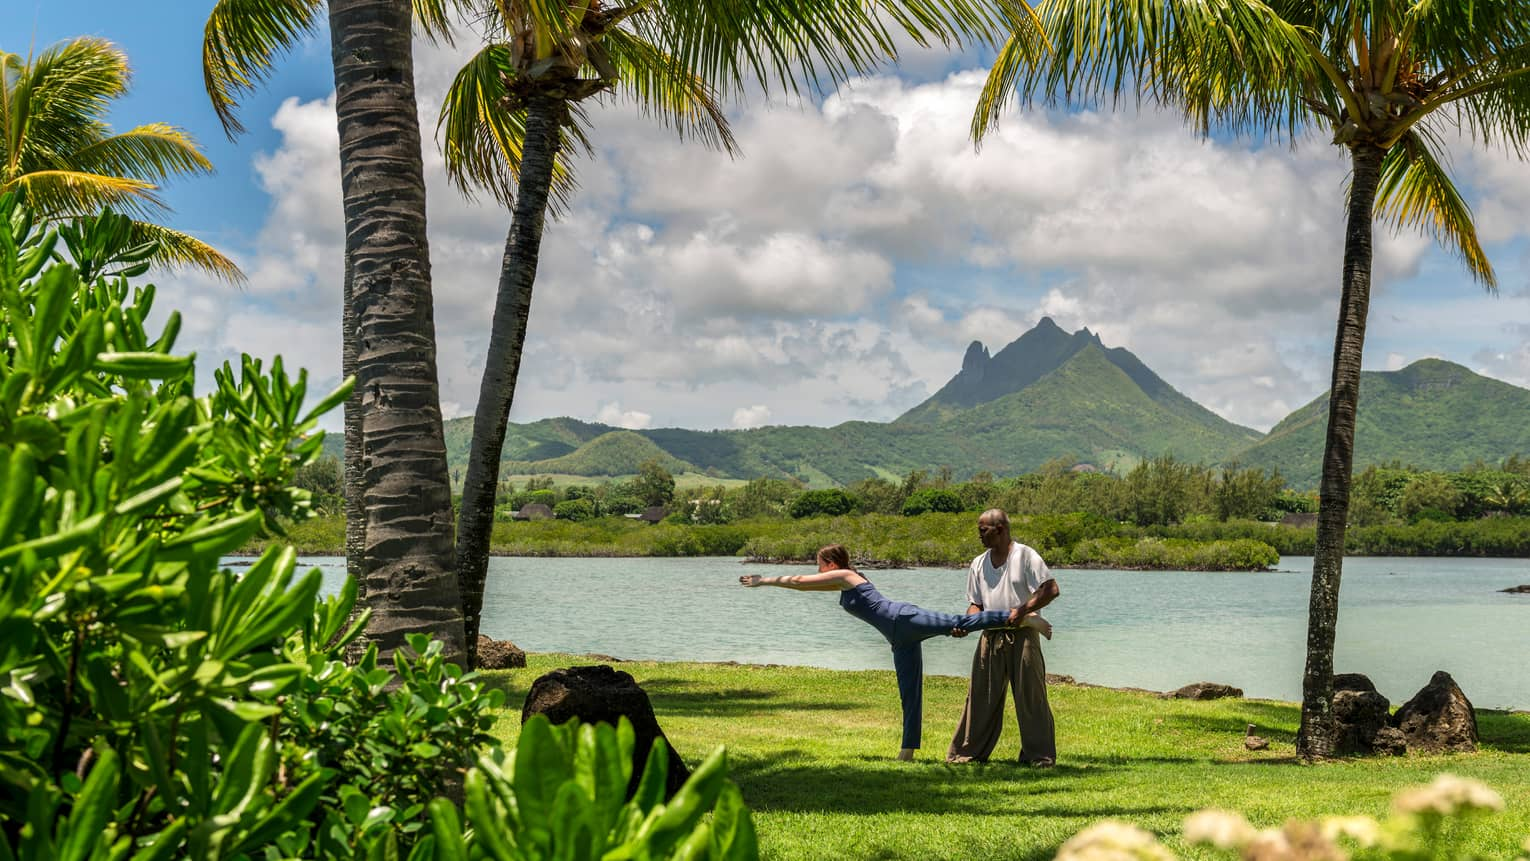 Man helps woman stretch in yoga pose on green lawn by ocean